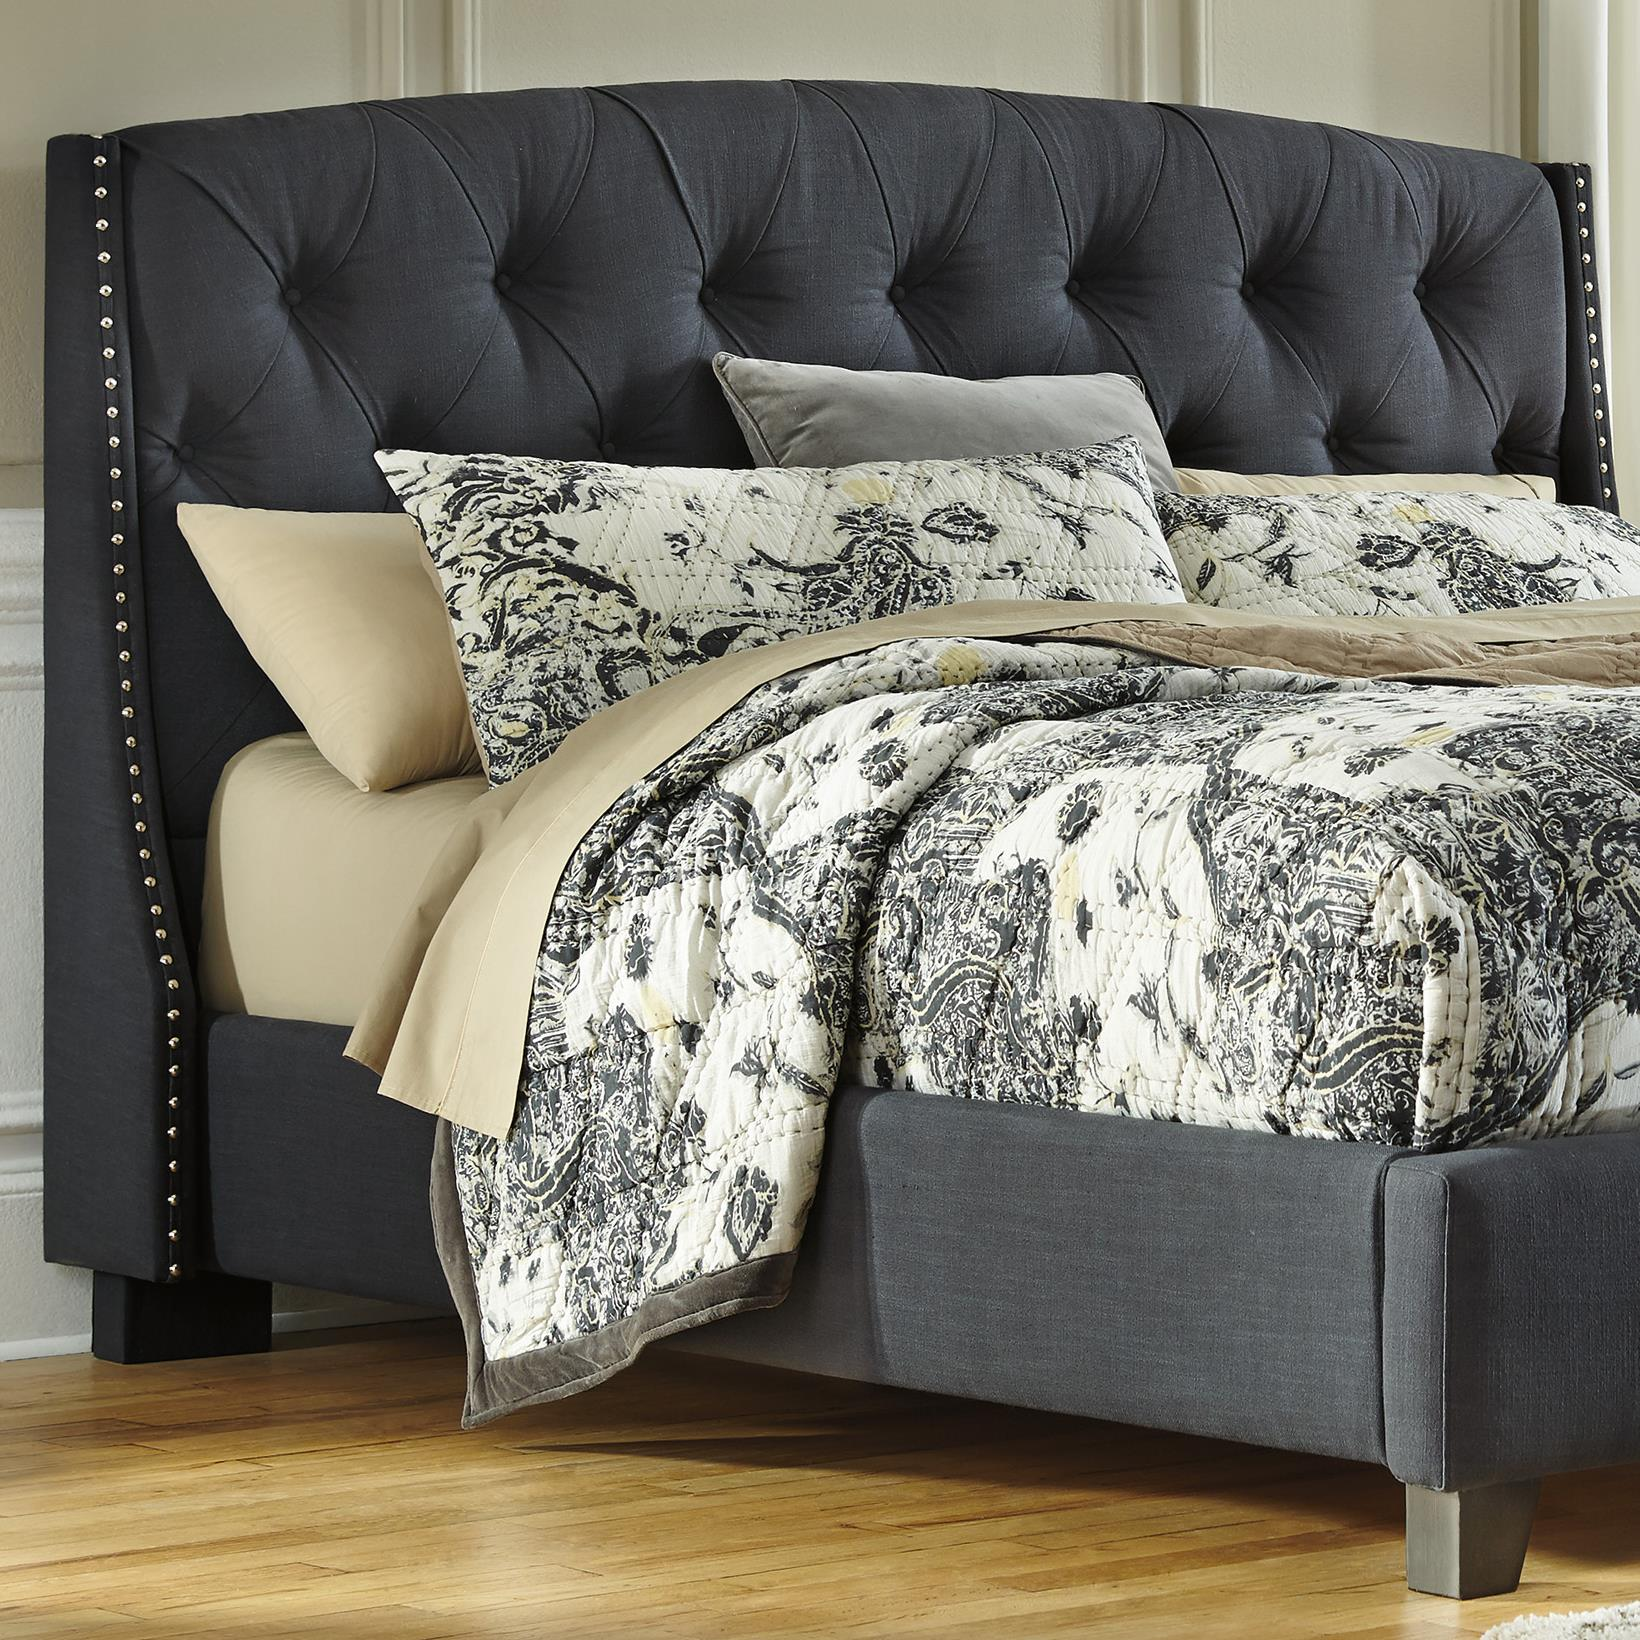 Ashley Furniture Signature Design Kasidon B600 558 King California King Upholstered Headboard In Dark Gray With Tufting And Nailhead Trim Del Sol Furniture Headboards